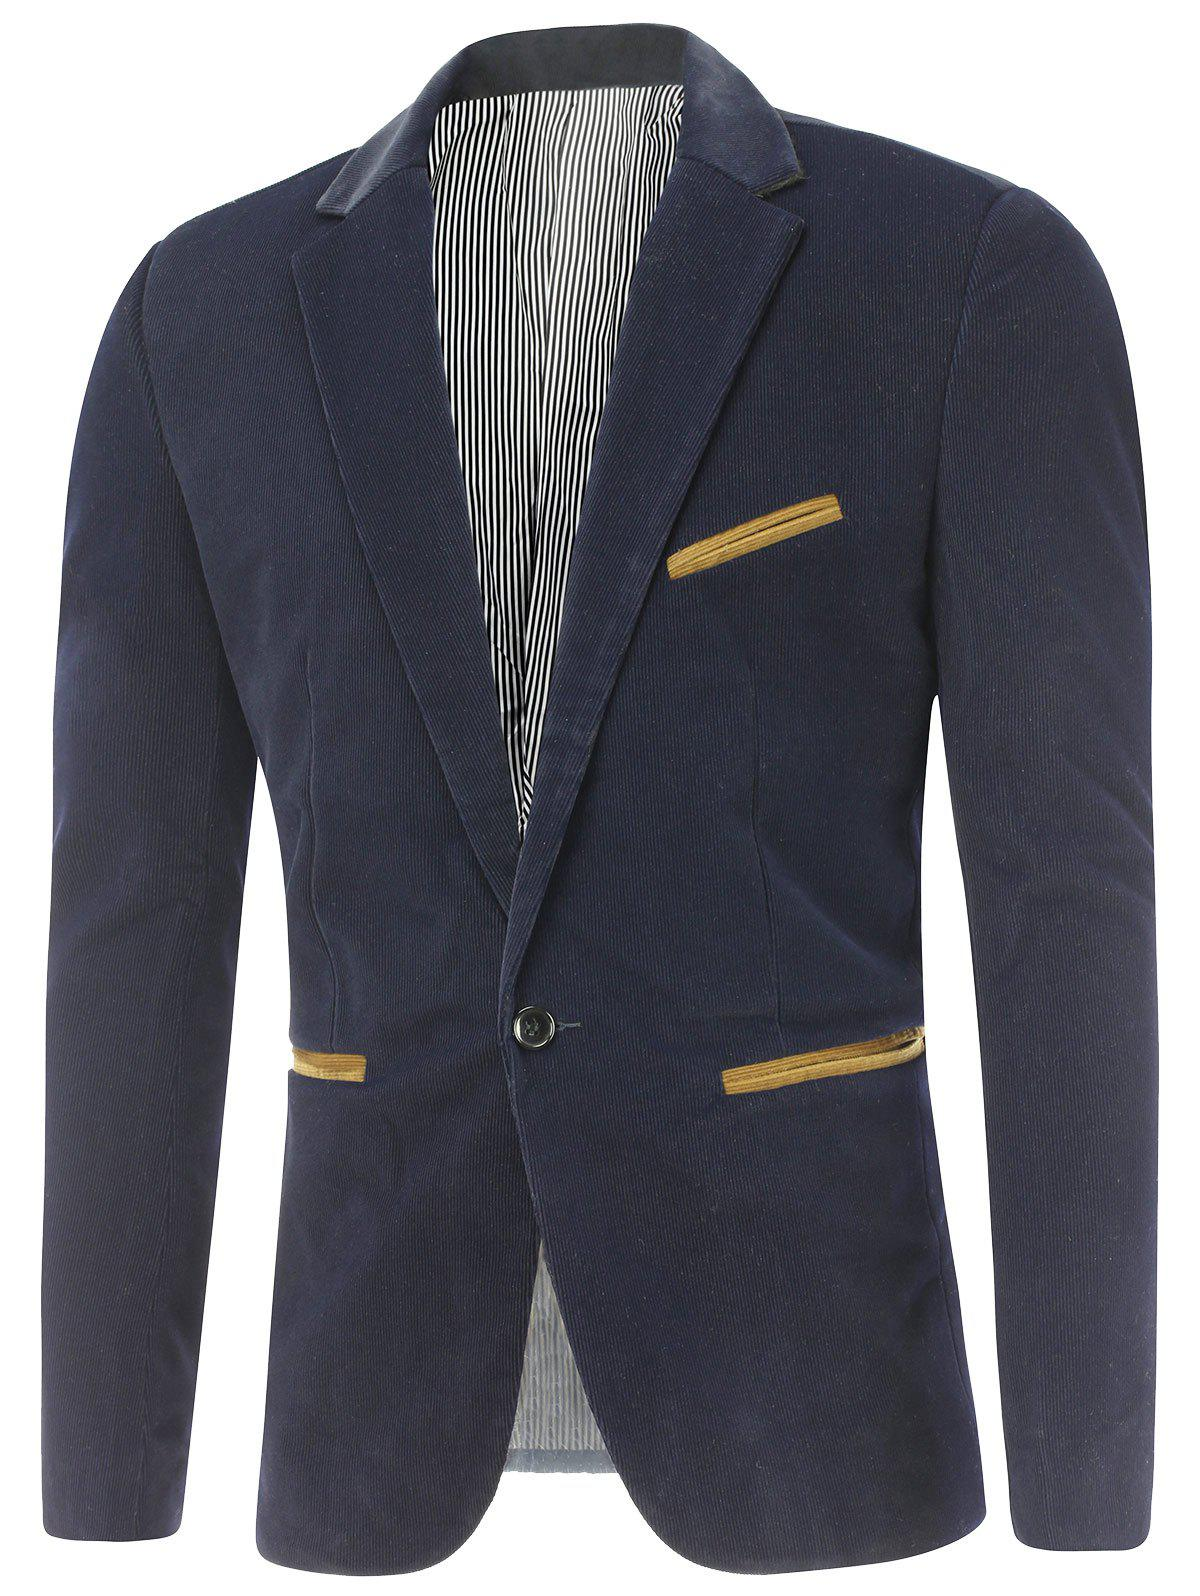 Notch Lapel Contrast Pocket Corduroy Blazer, Sapphire blue